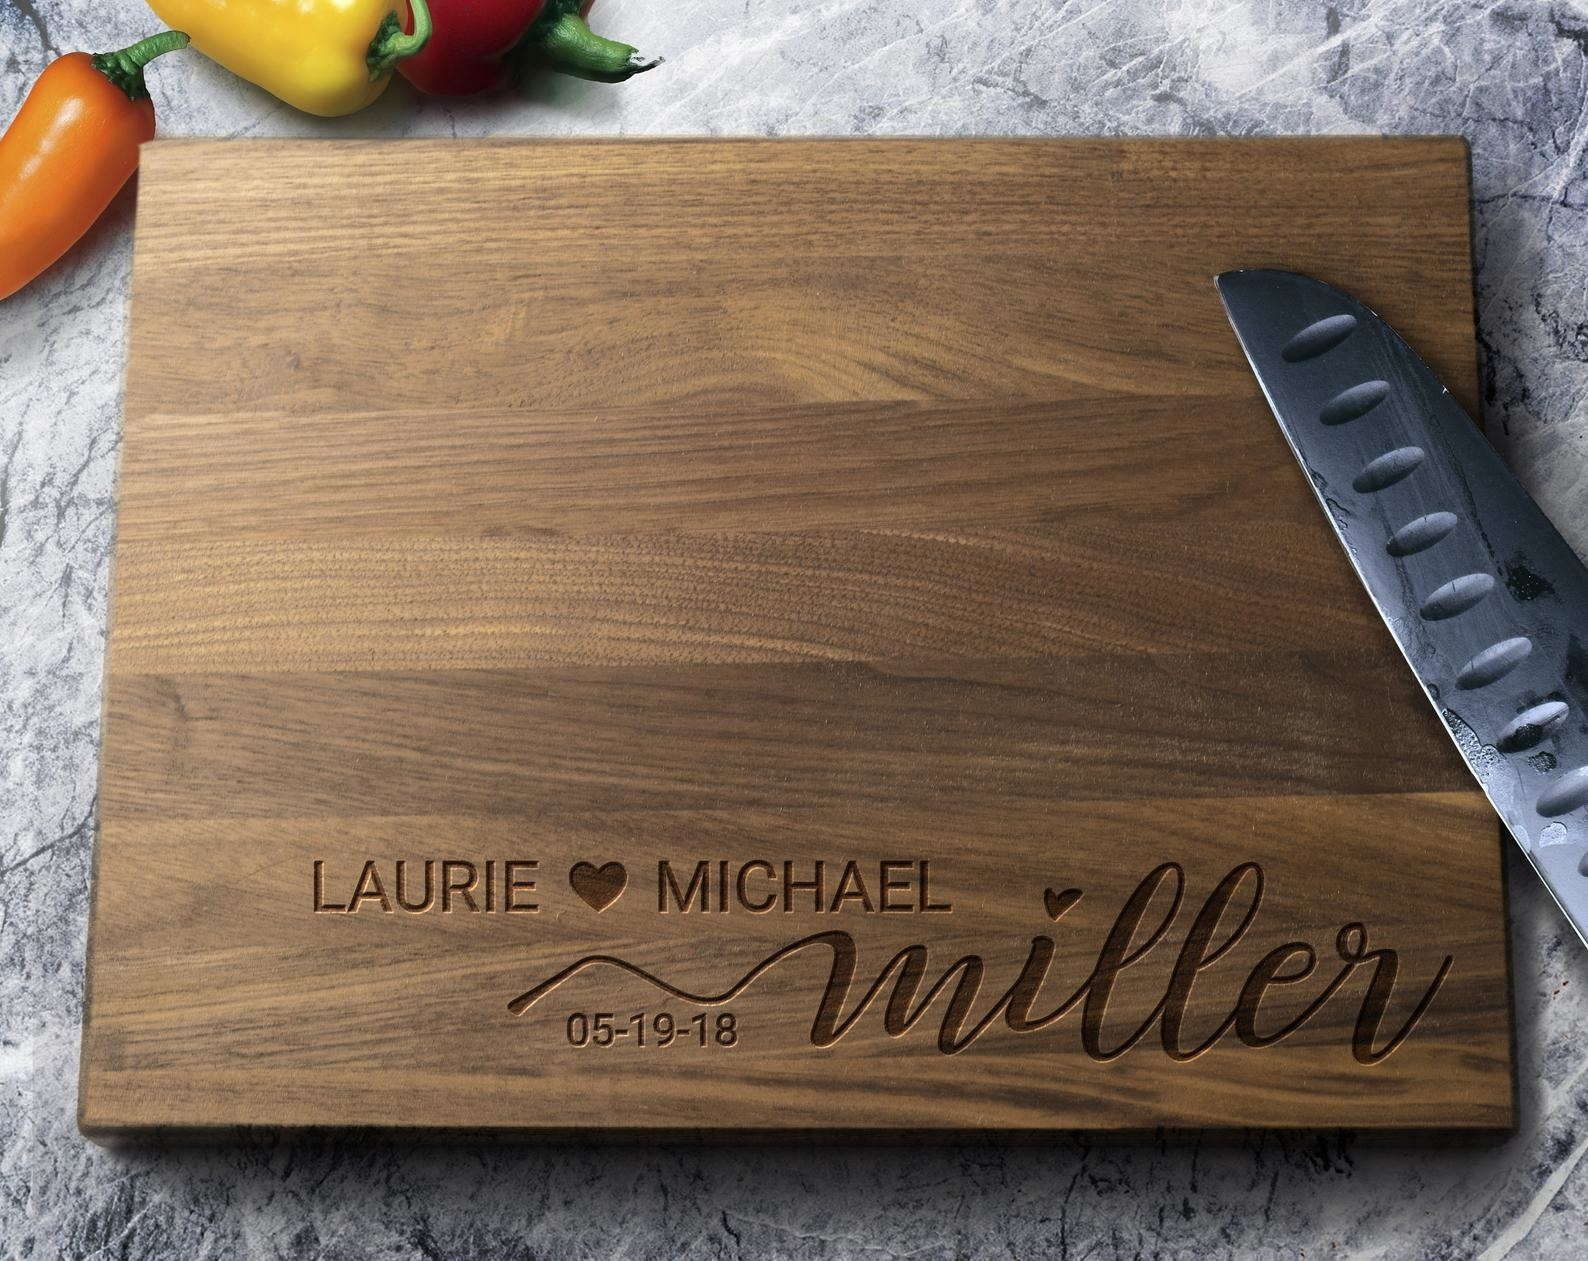 the cutting board with Laurie and Michael Miller, 5-19-18 engraved into it